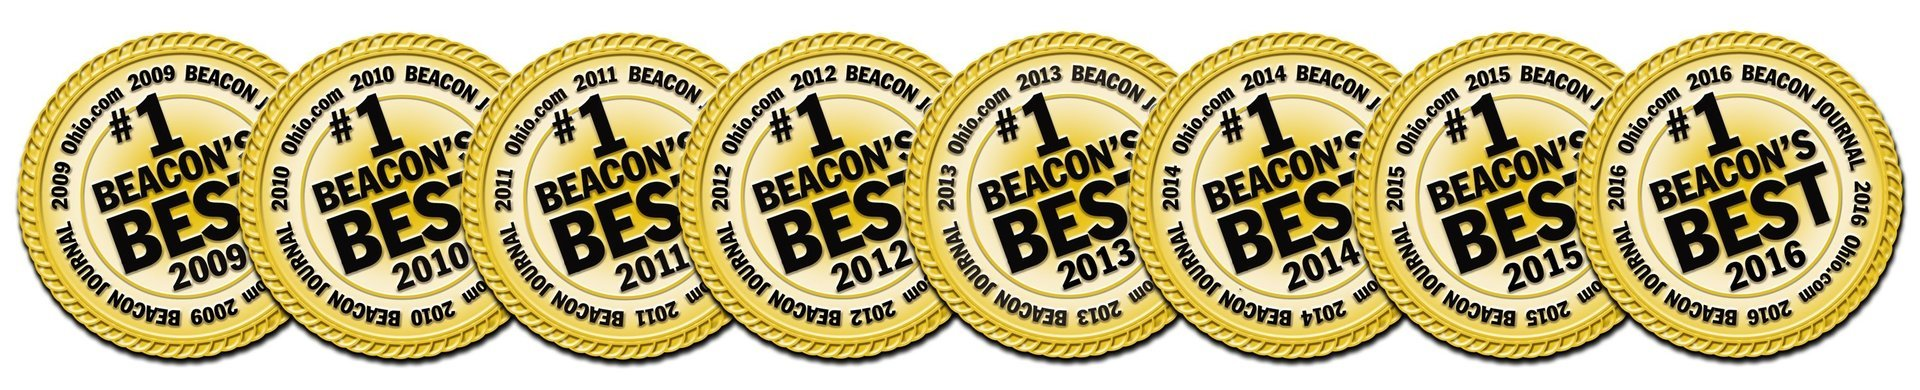 Akron Beacon Journal Beacon's Best Dentist 8 Years in a Row